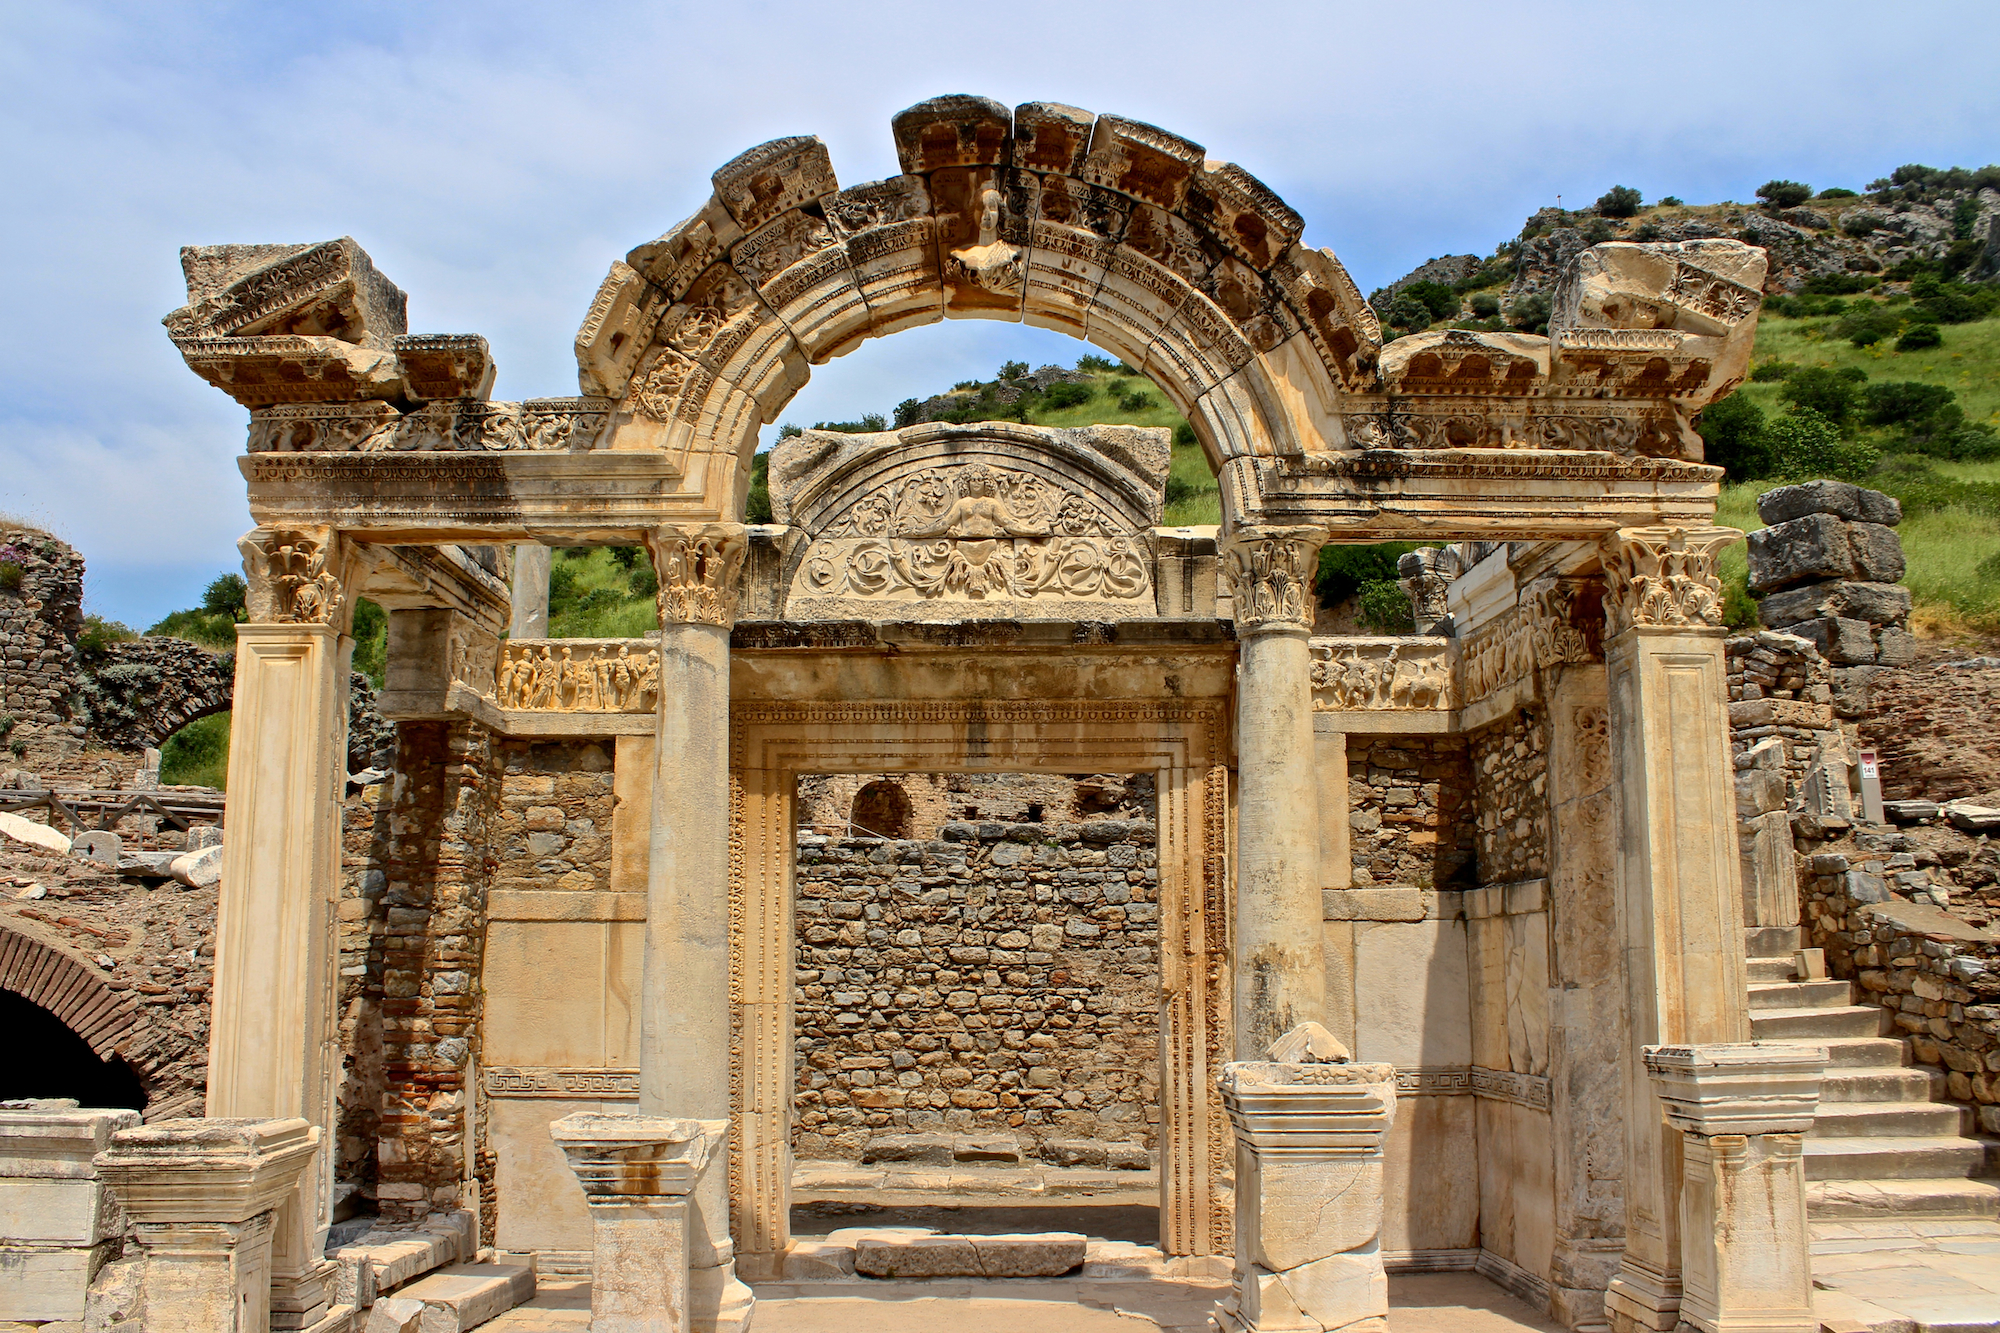 Travel Bloggers Share Their Favorite Unesco Historic Monuments And Architectural Wonders